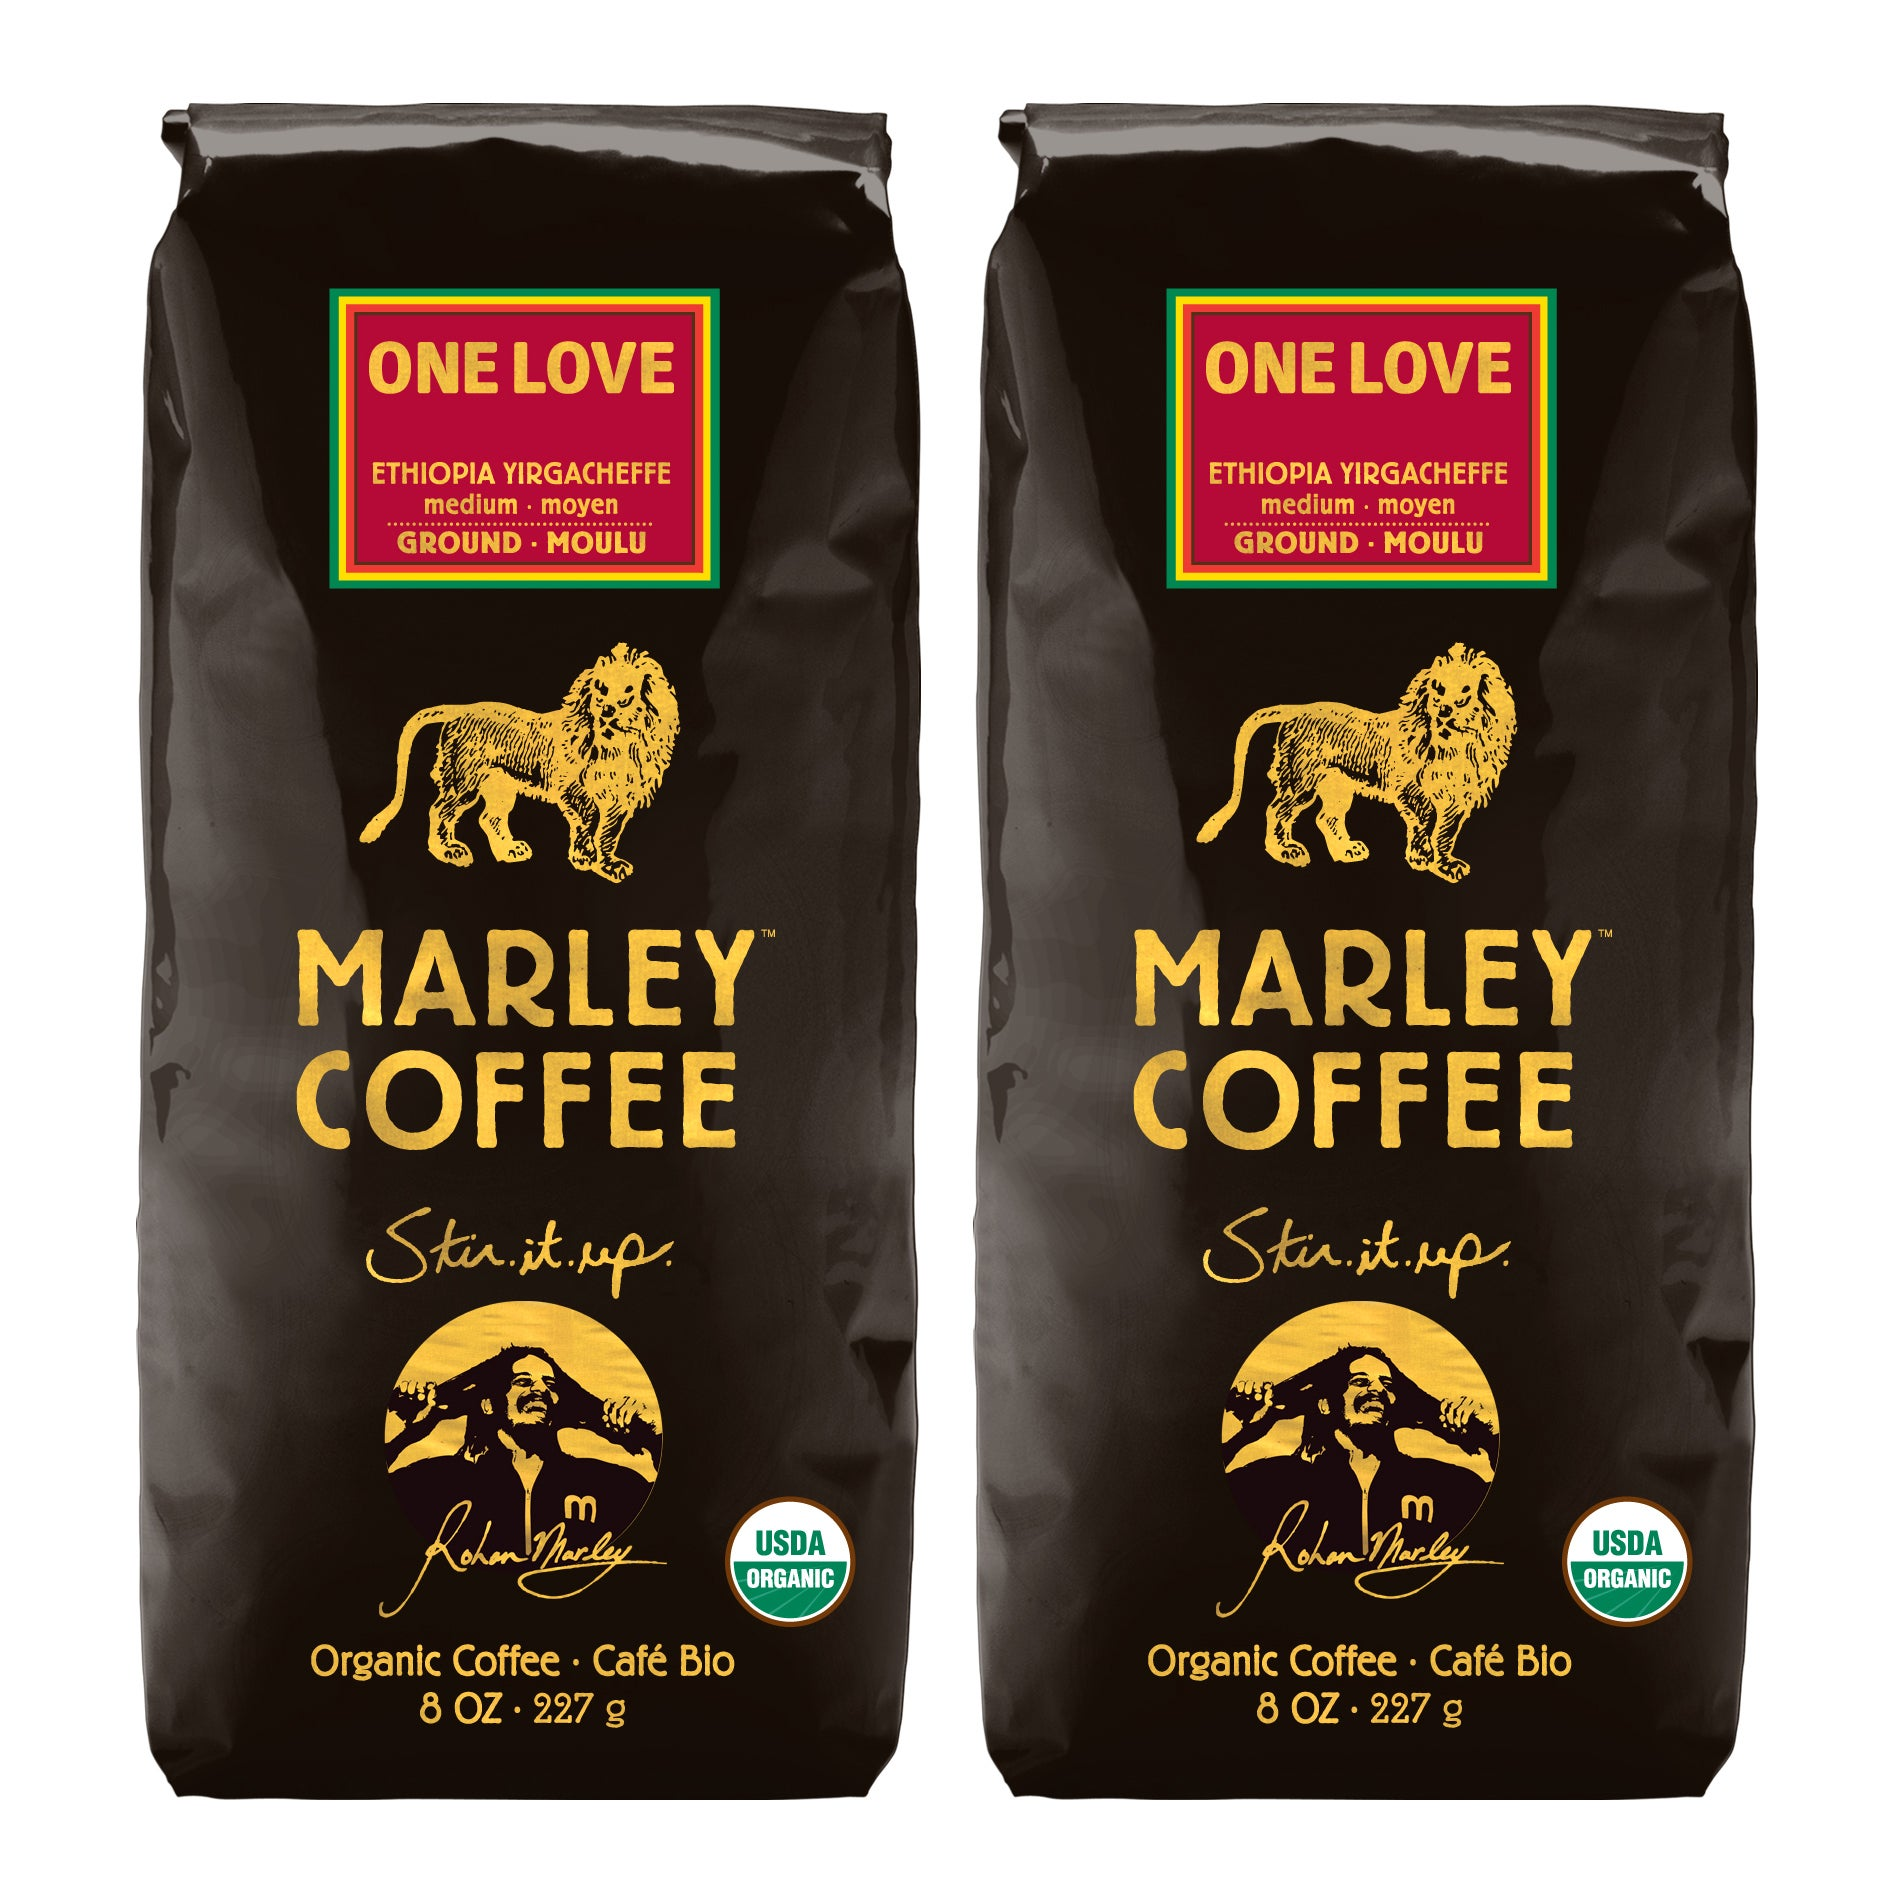 Marley Coffee One Love Ethiopia Yirgacheffe Ground Coffee (1 Pound)